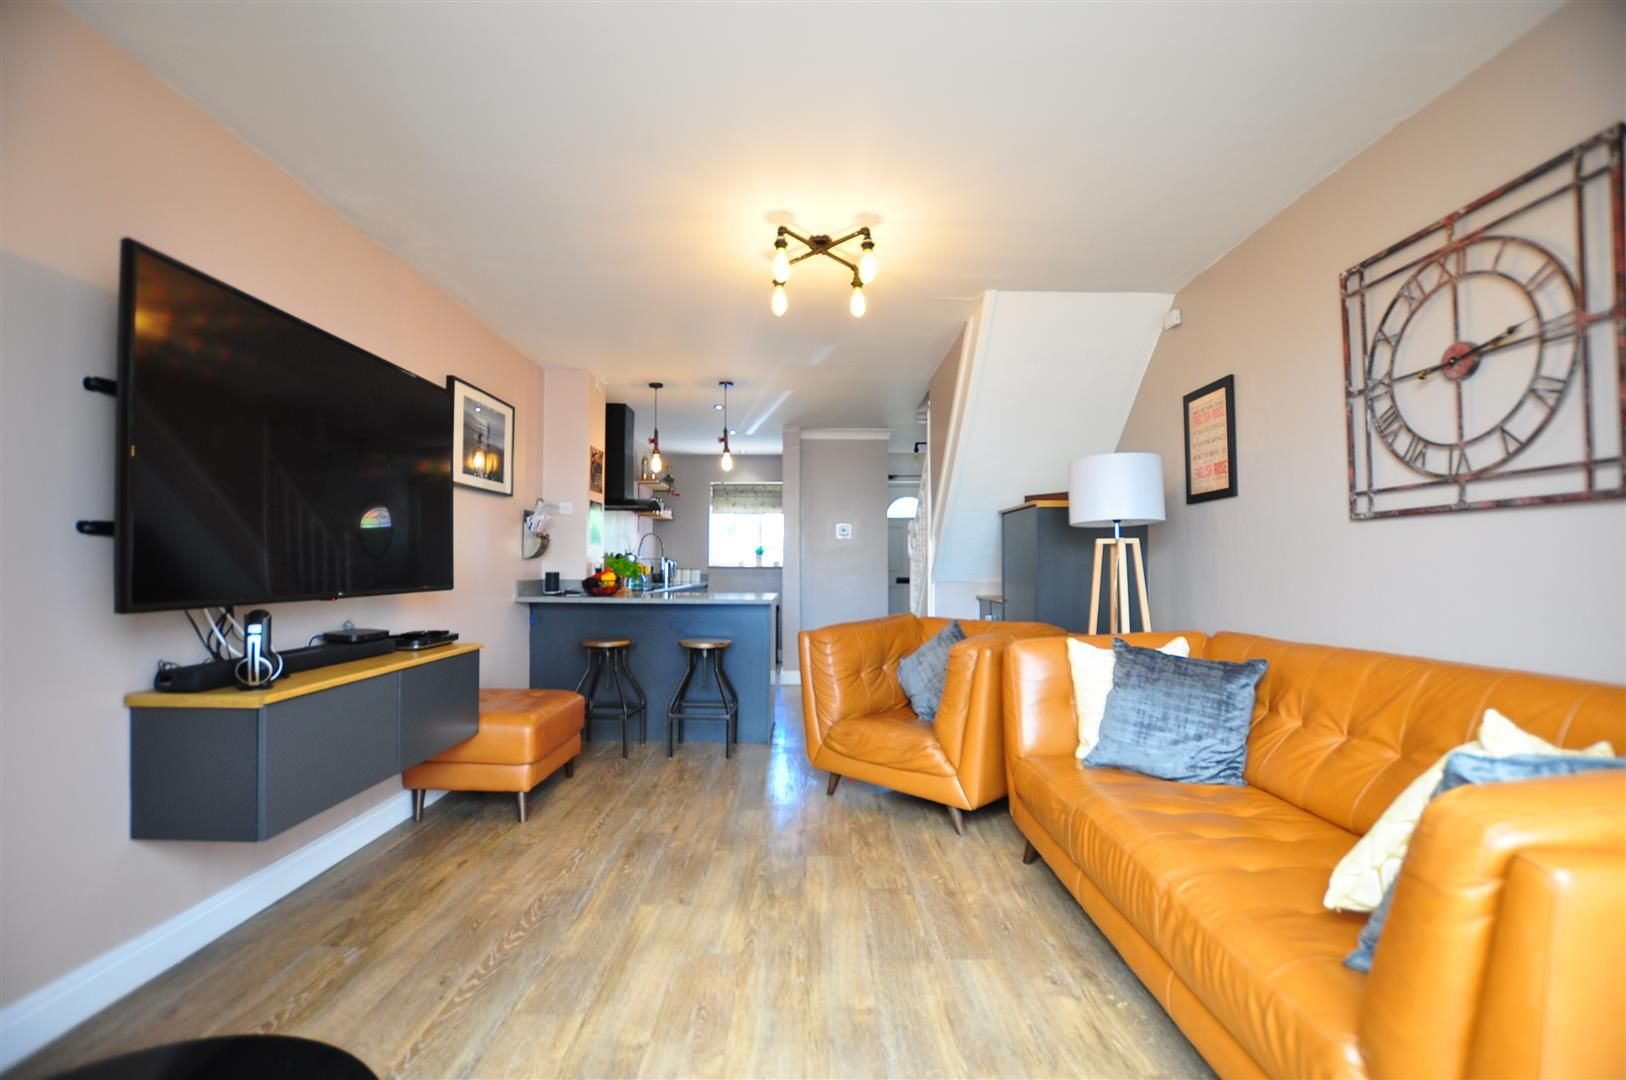 2 bed end-of-terrace for sale  - Property Image 7